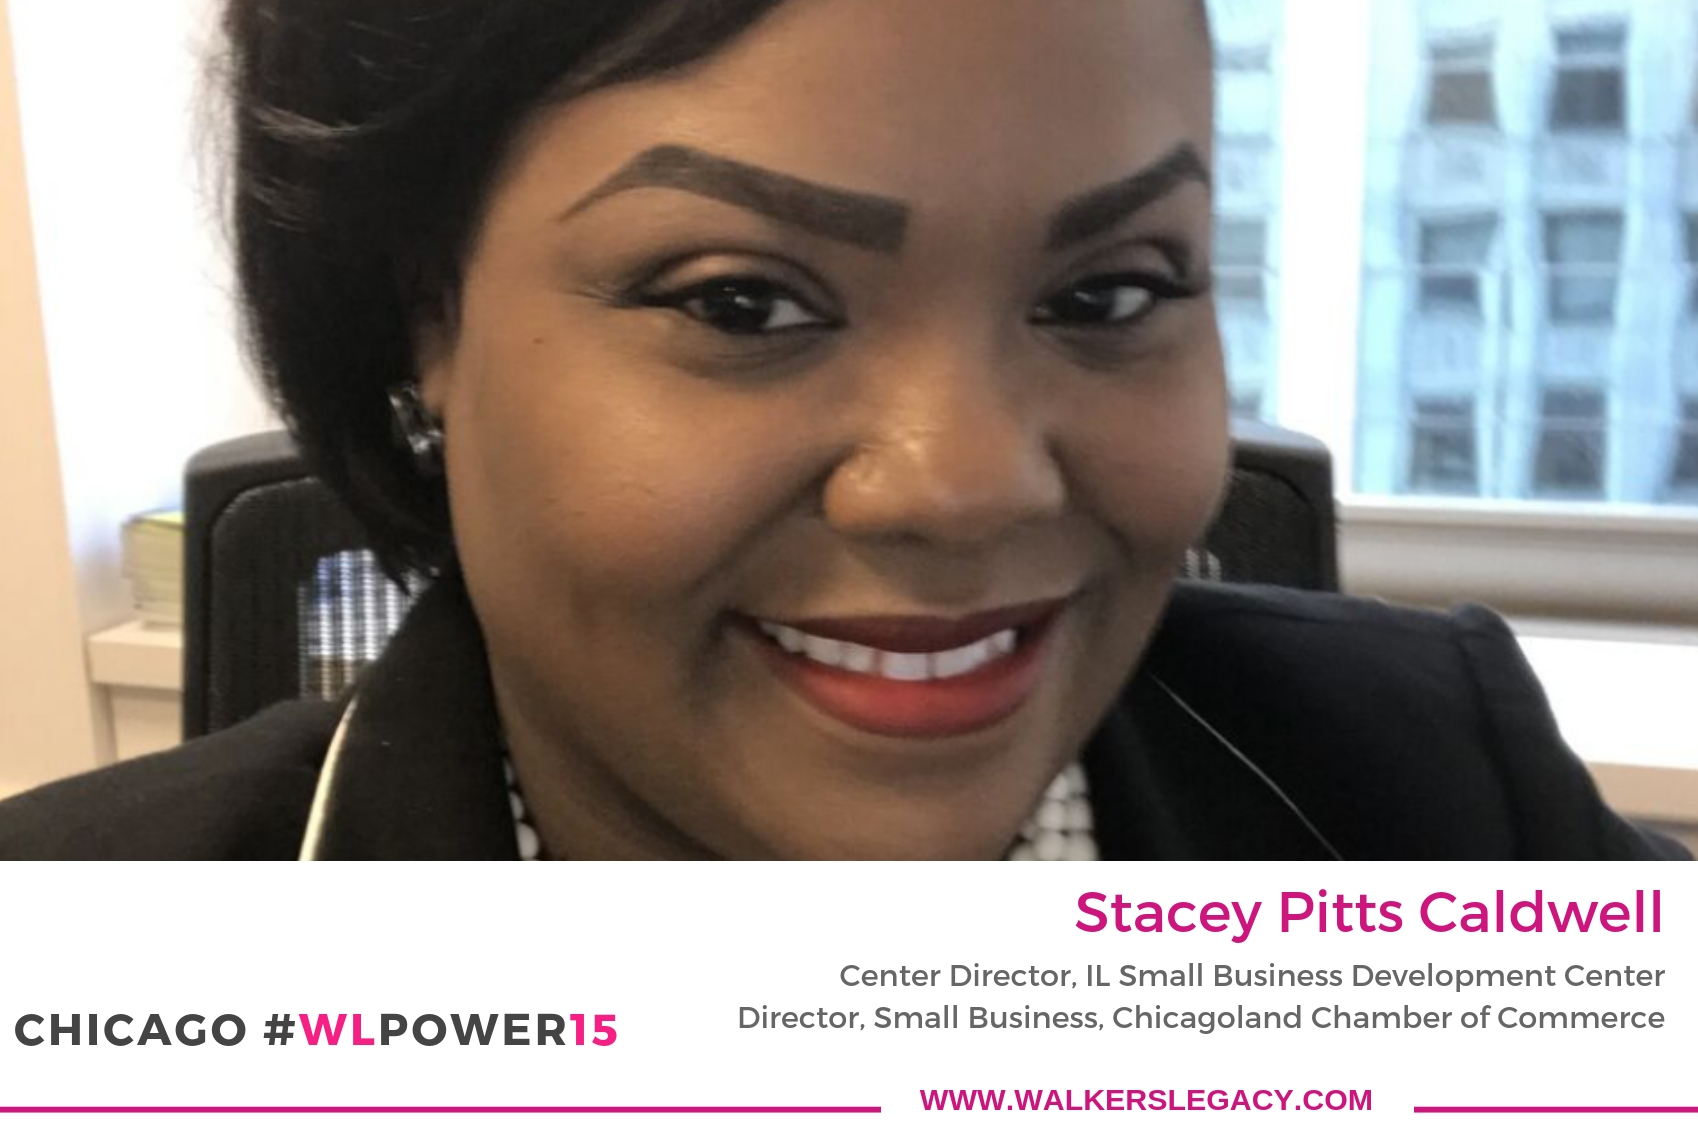 Stacey Pitts Caldwell